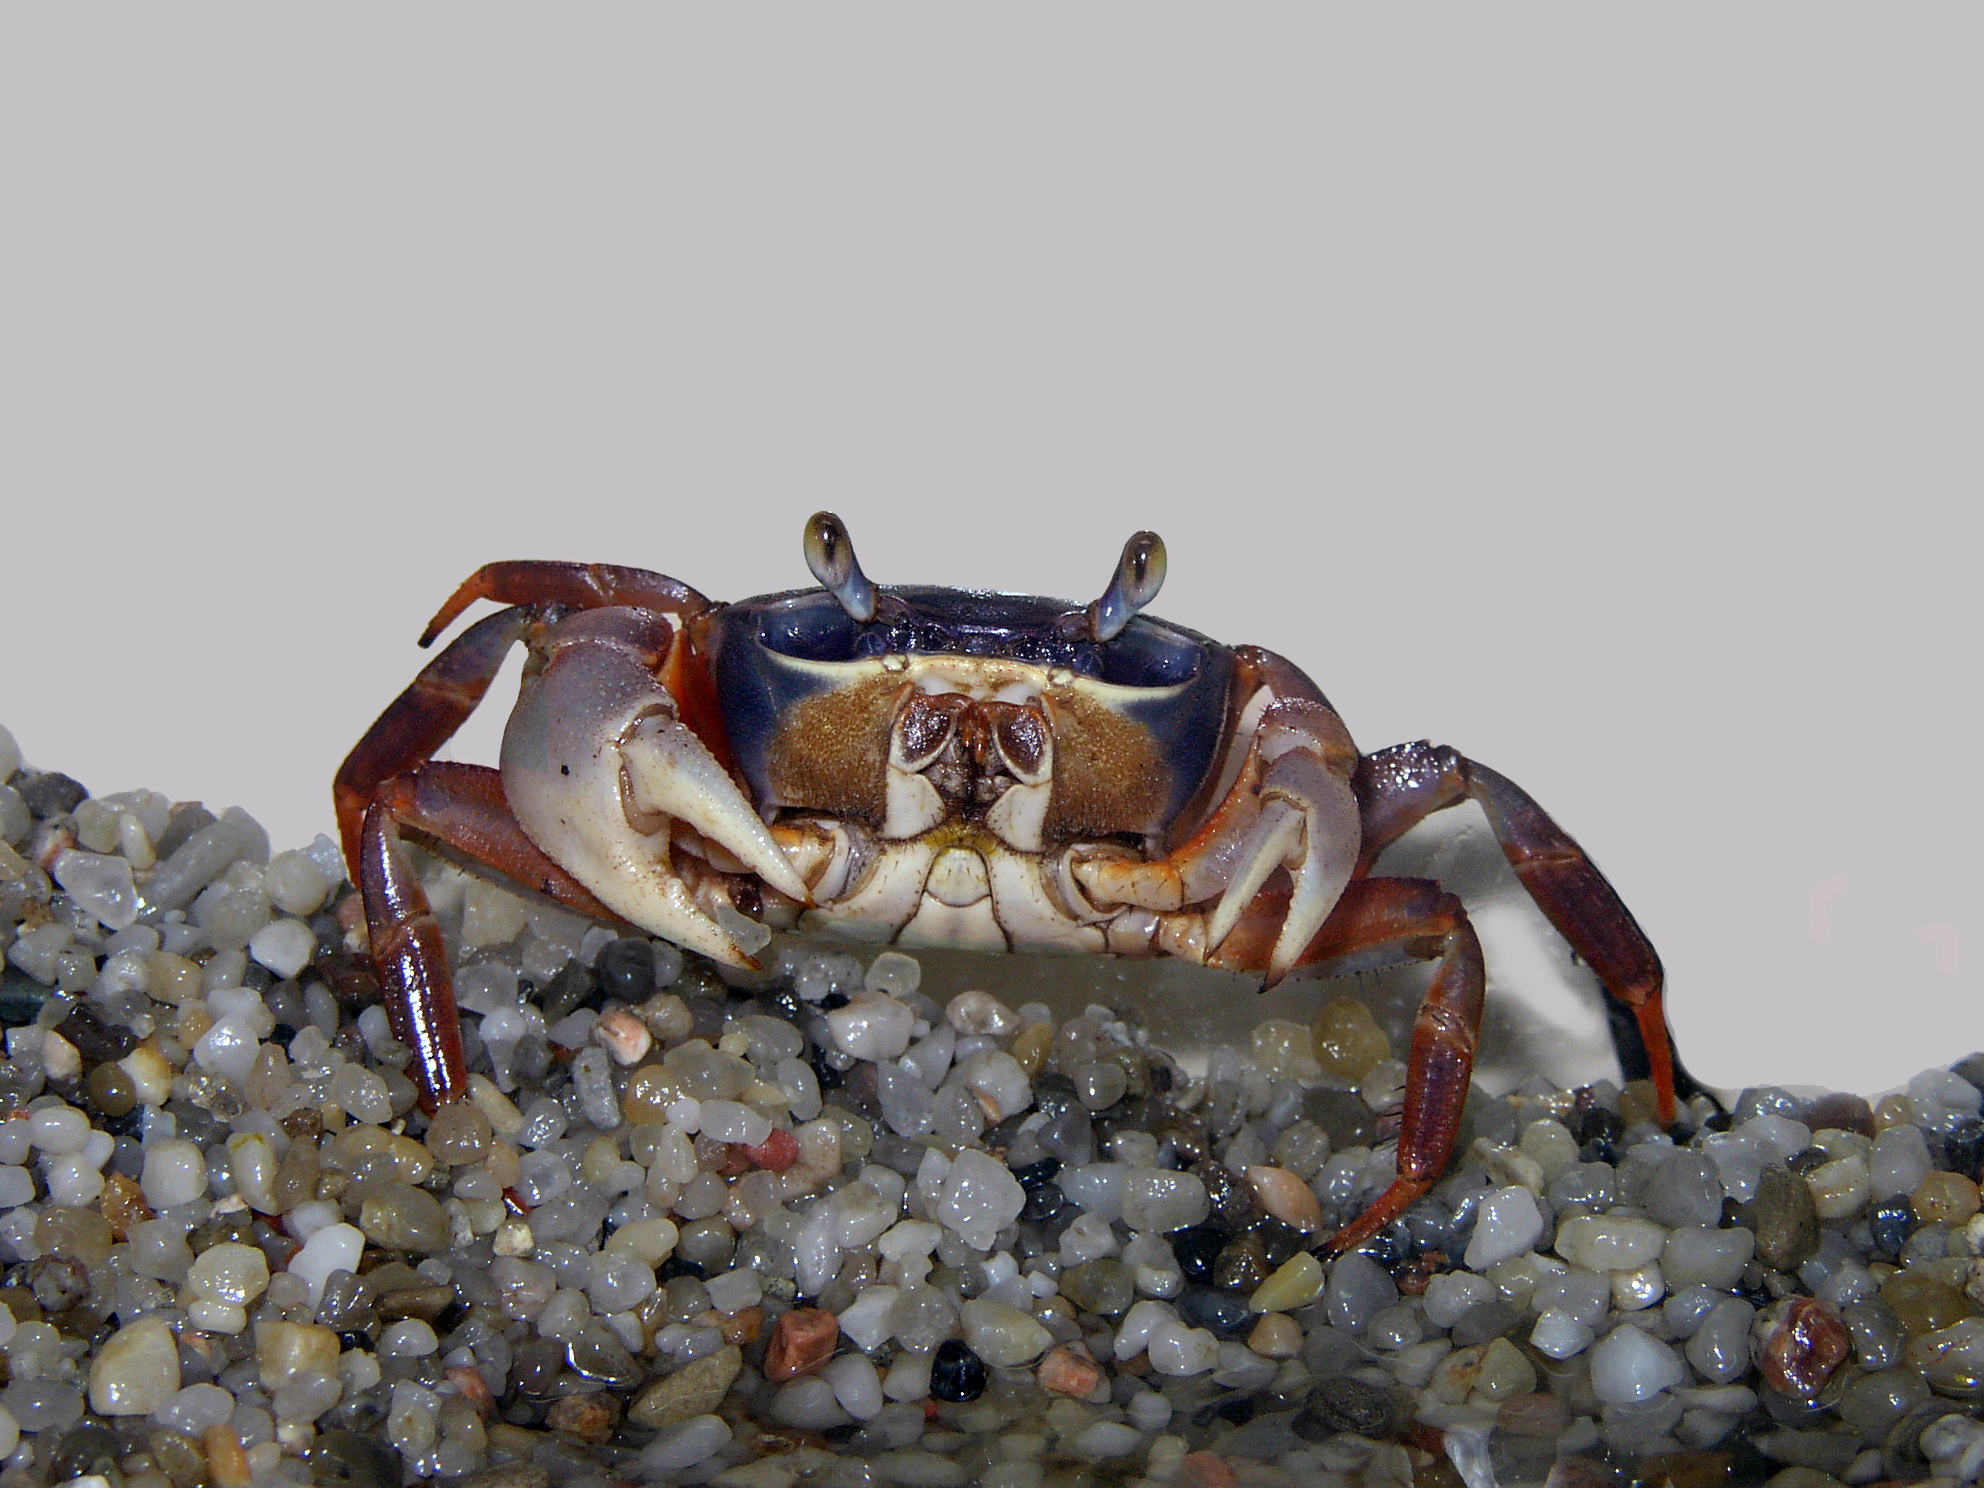 Rainbow land crabs are a popular type of pet crab